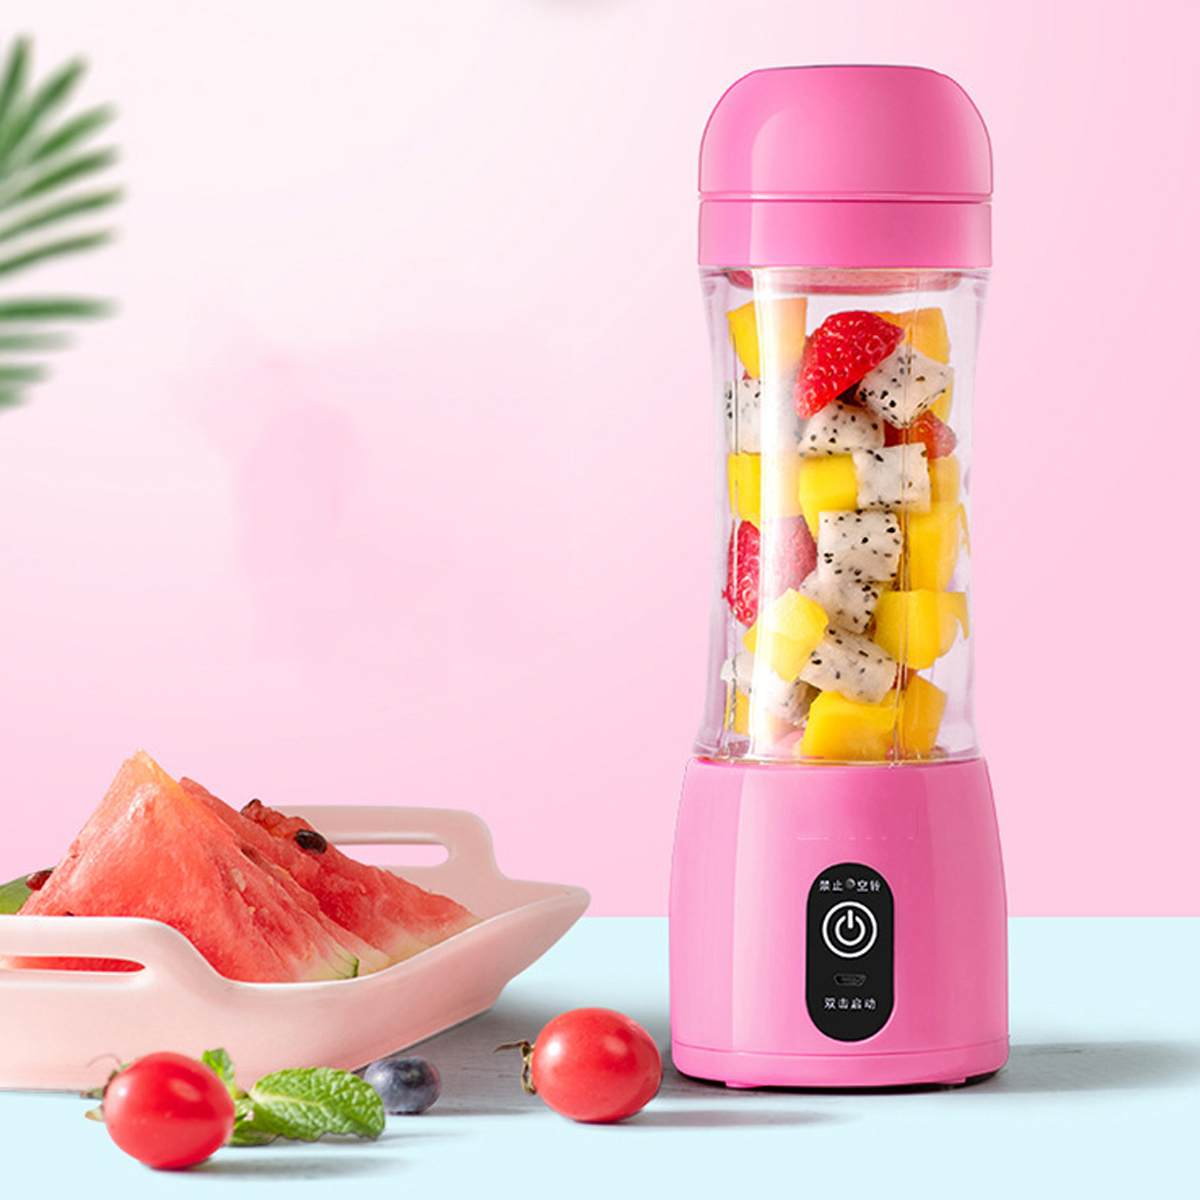 400ml Portable Juicer Electric USB Rechargeable Smoothie Machine Mixer Mini Juice Cup Maker Fast Food Processor With Strainer